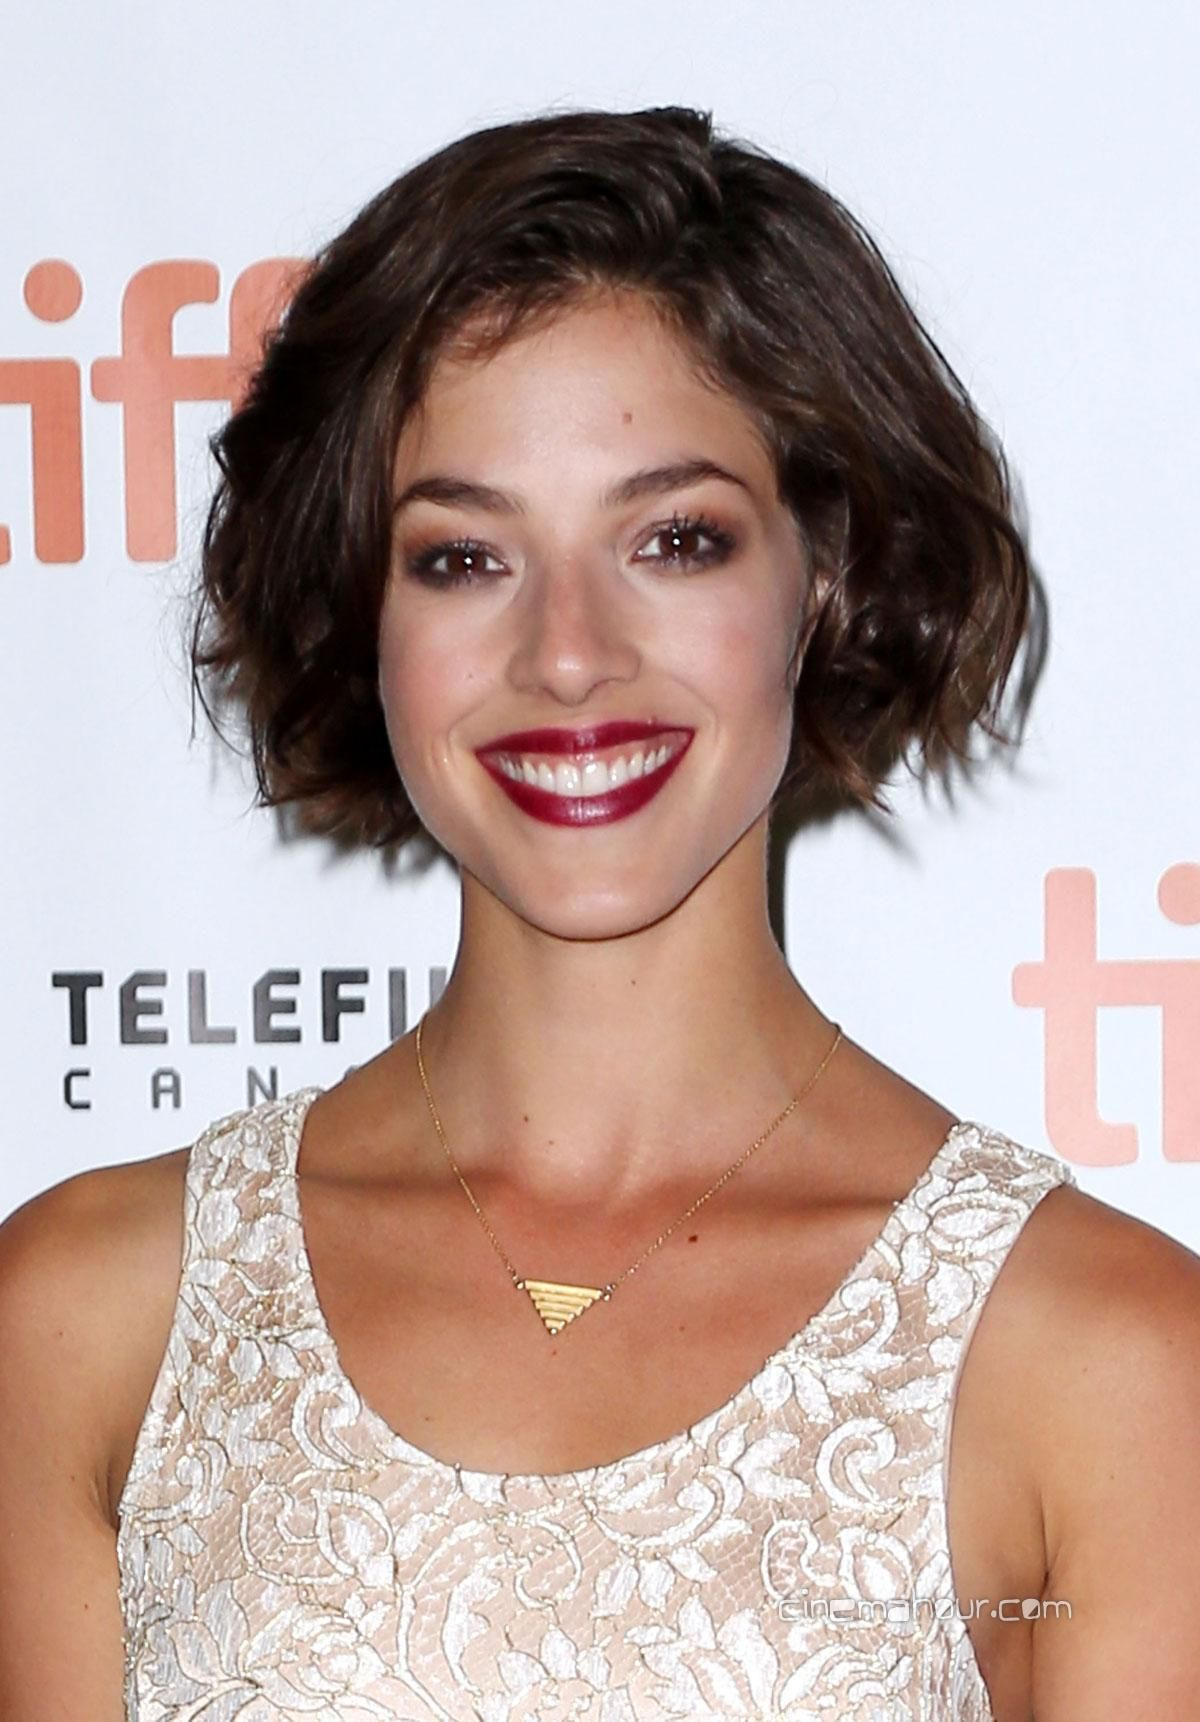 94474243_Olivia_Thirlby_Photos_at_Dredd_3_D_Premie.jpg (1200×1722)